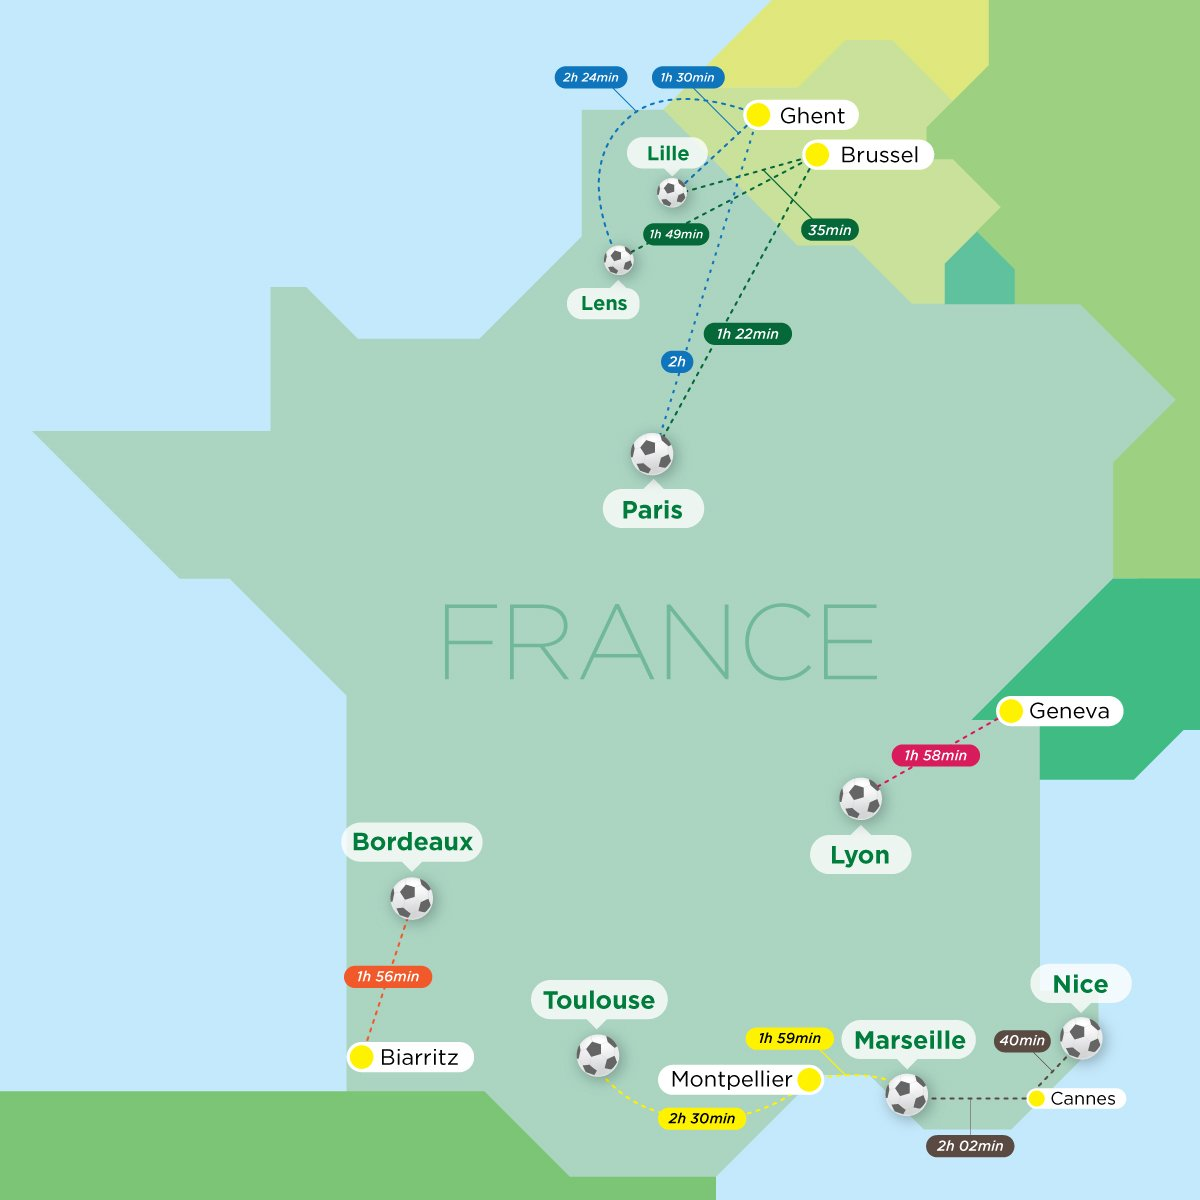 EURO 2016 - Alternative cities and distances